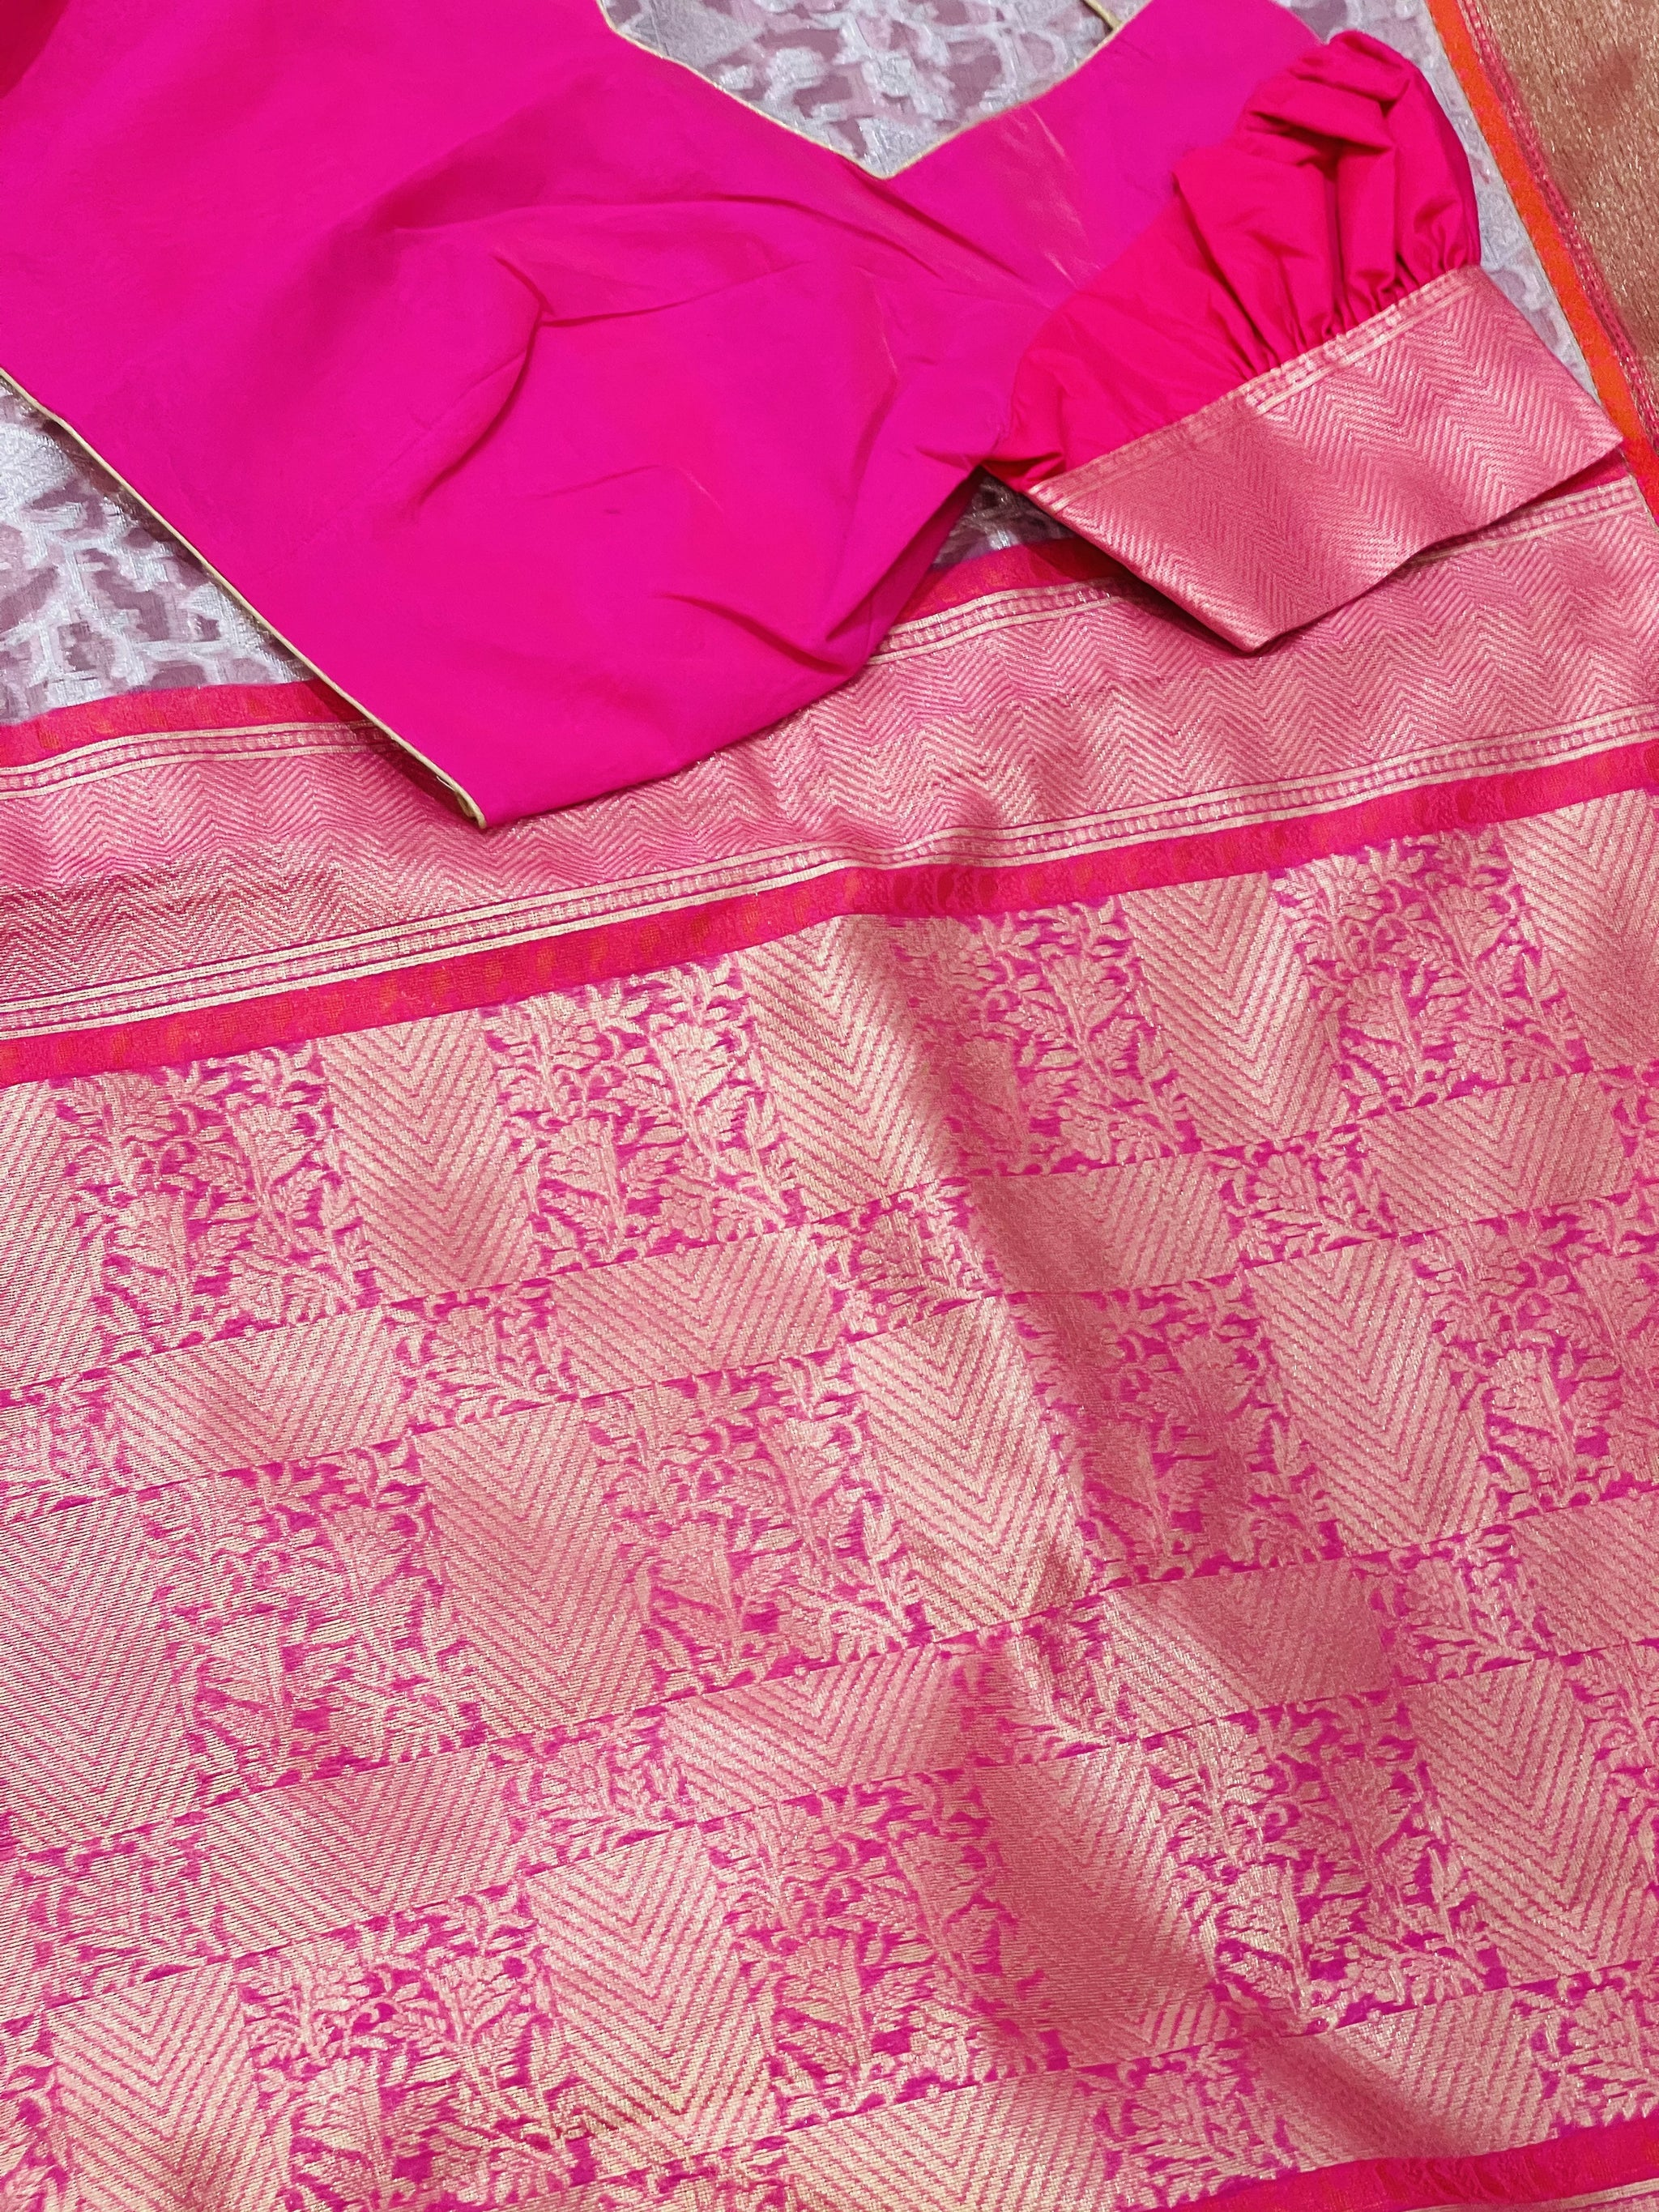 Pink and Silver Banaras Kora Saree